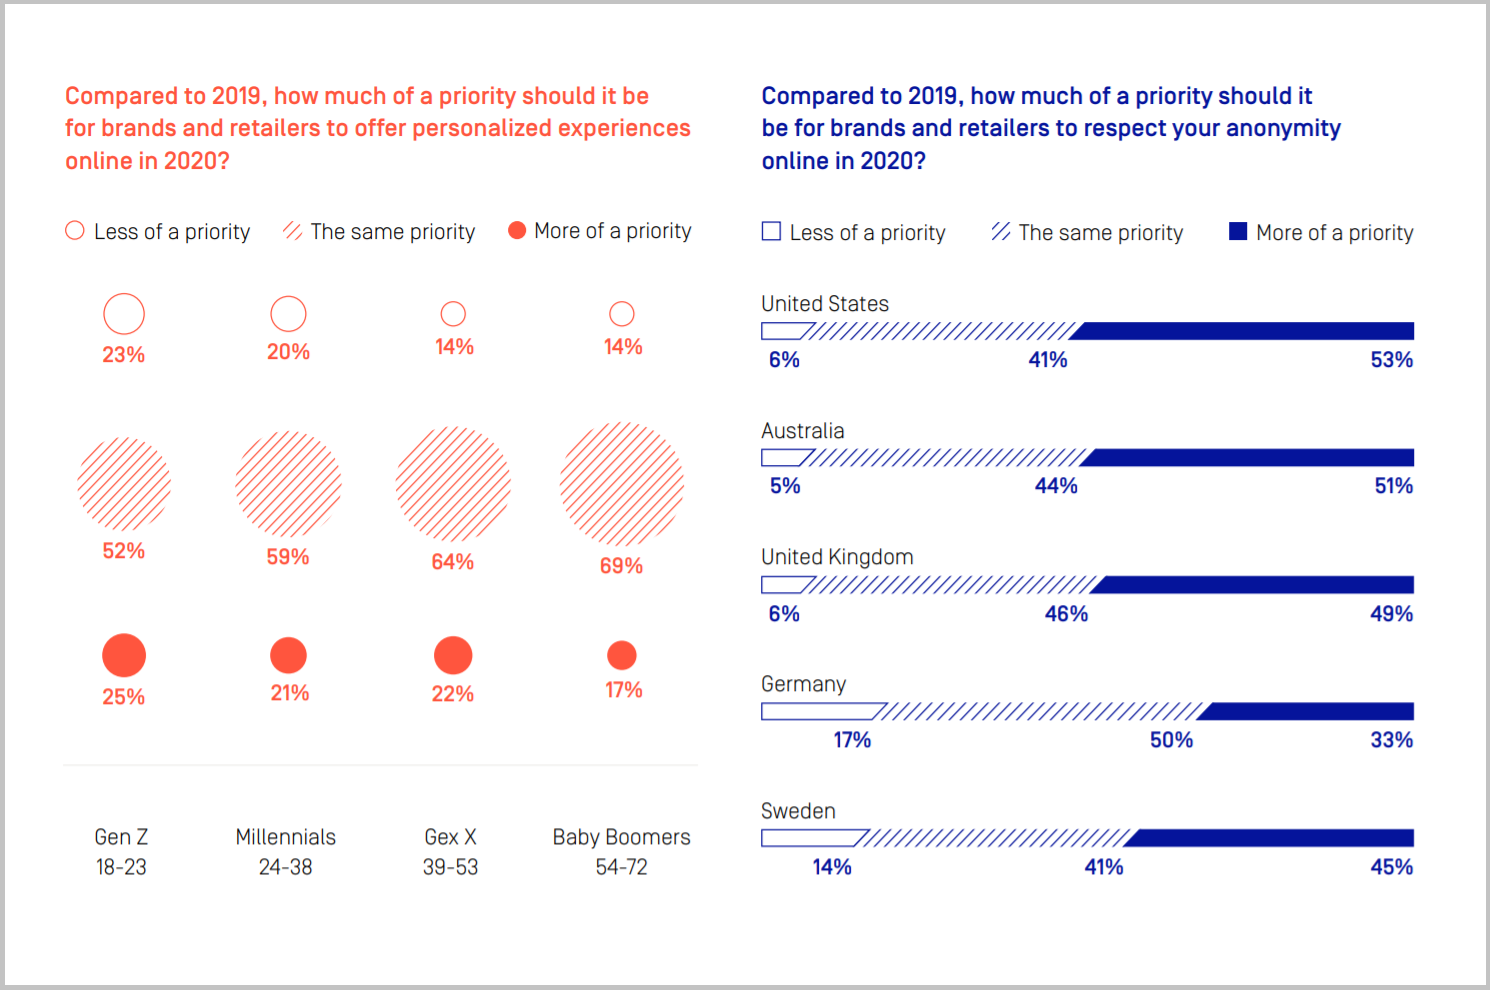 Compared to 2019, how much of a priority should it be for brands and retailers to respect your anonymity online in 2020 - chart